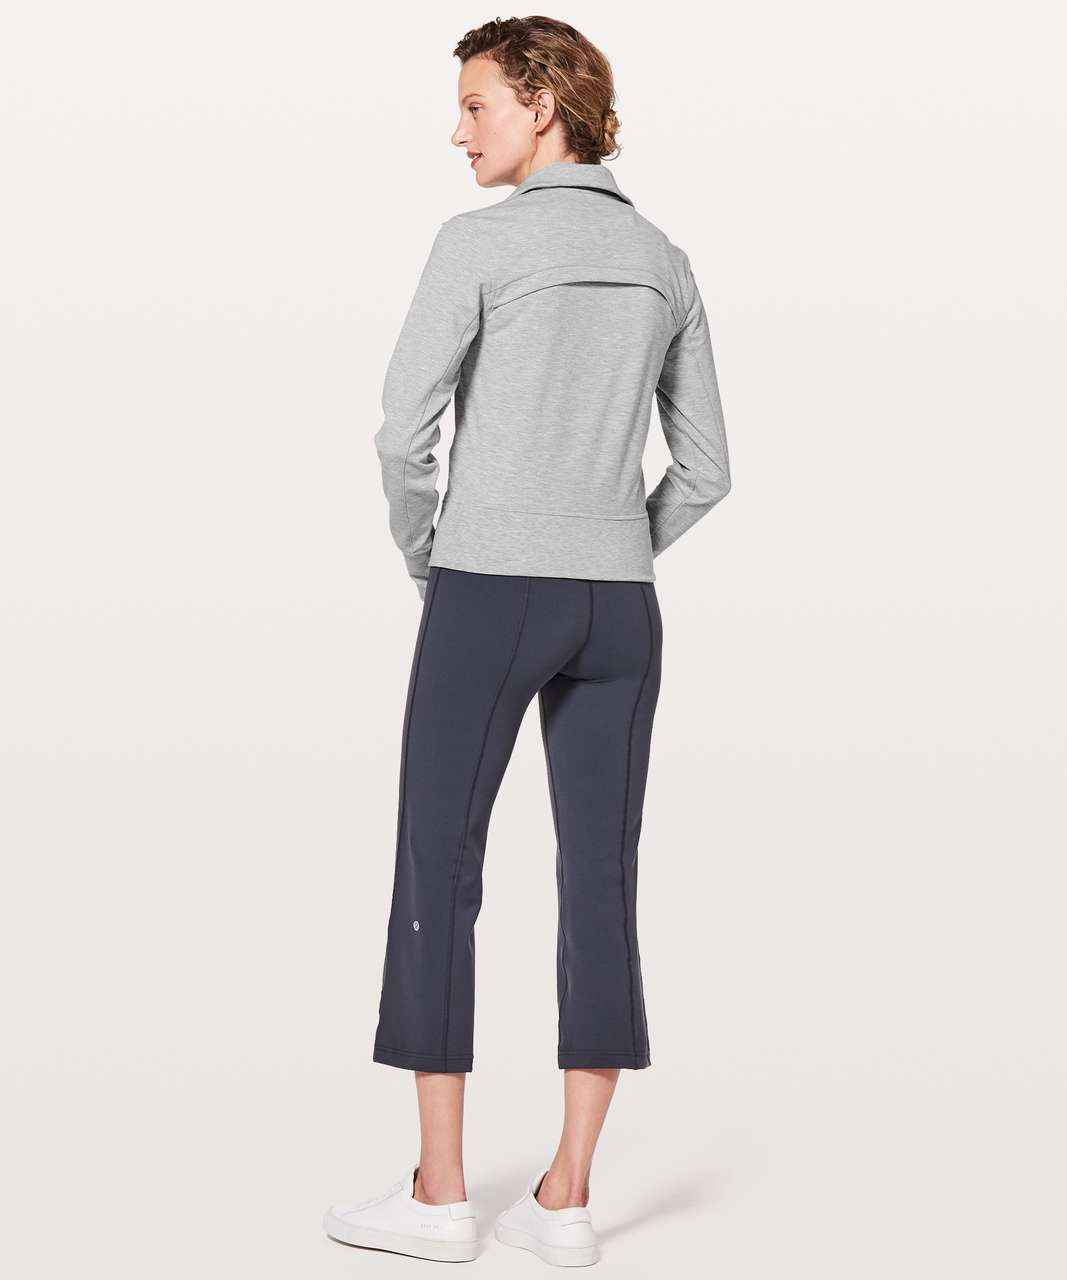 Lululemon Gather Up Jacket - Heathered Power Grey / Sea Salt